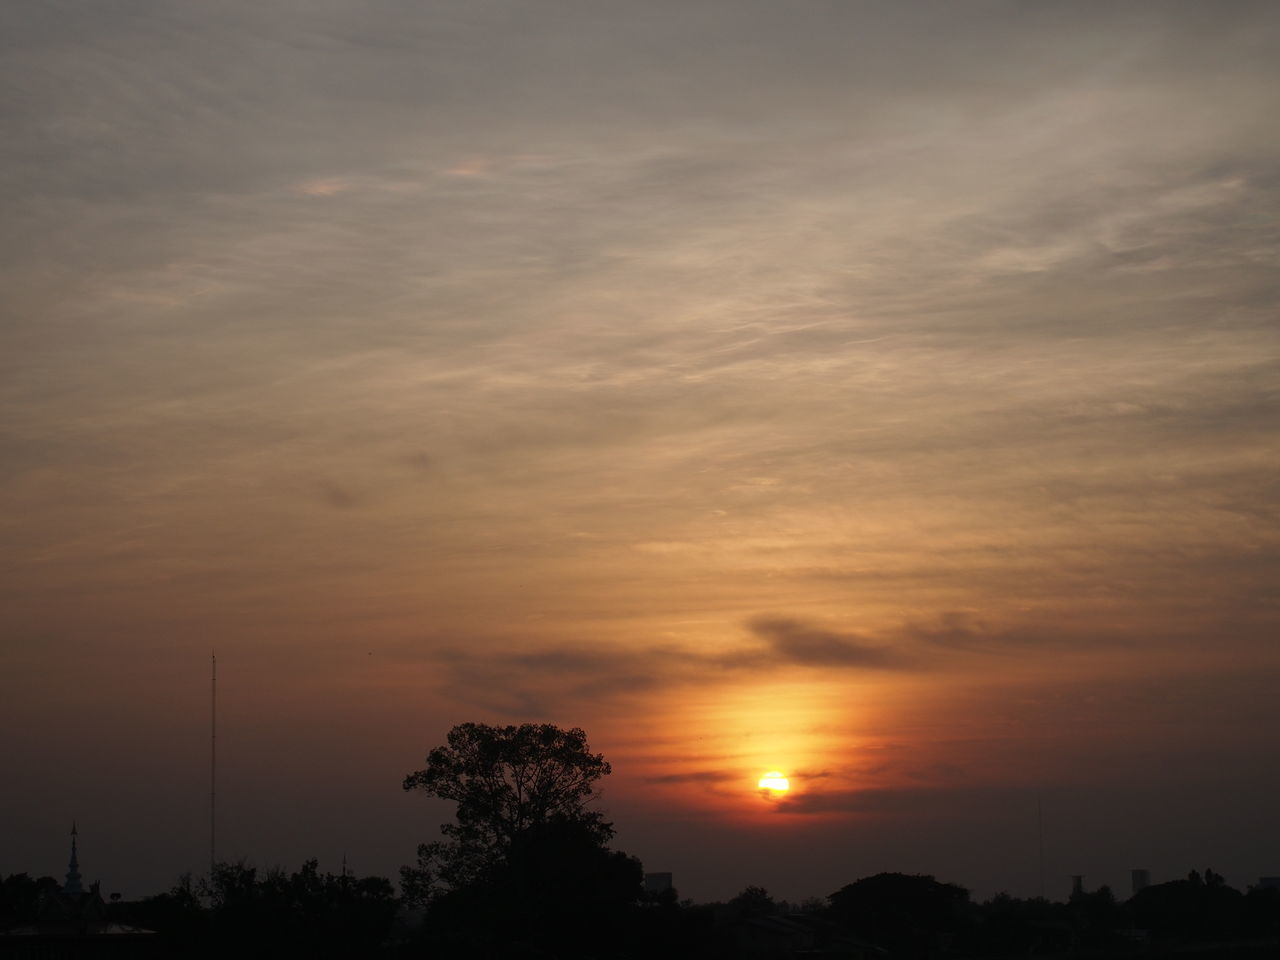 sunset, silhouette, orange color, tree, beauty in nature, tranquil scene, nature, scenics, tranquility, no people, sky, cloud - sky, outdoors